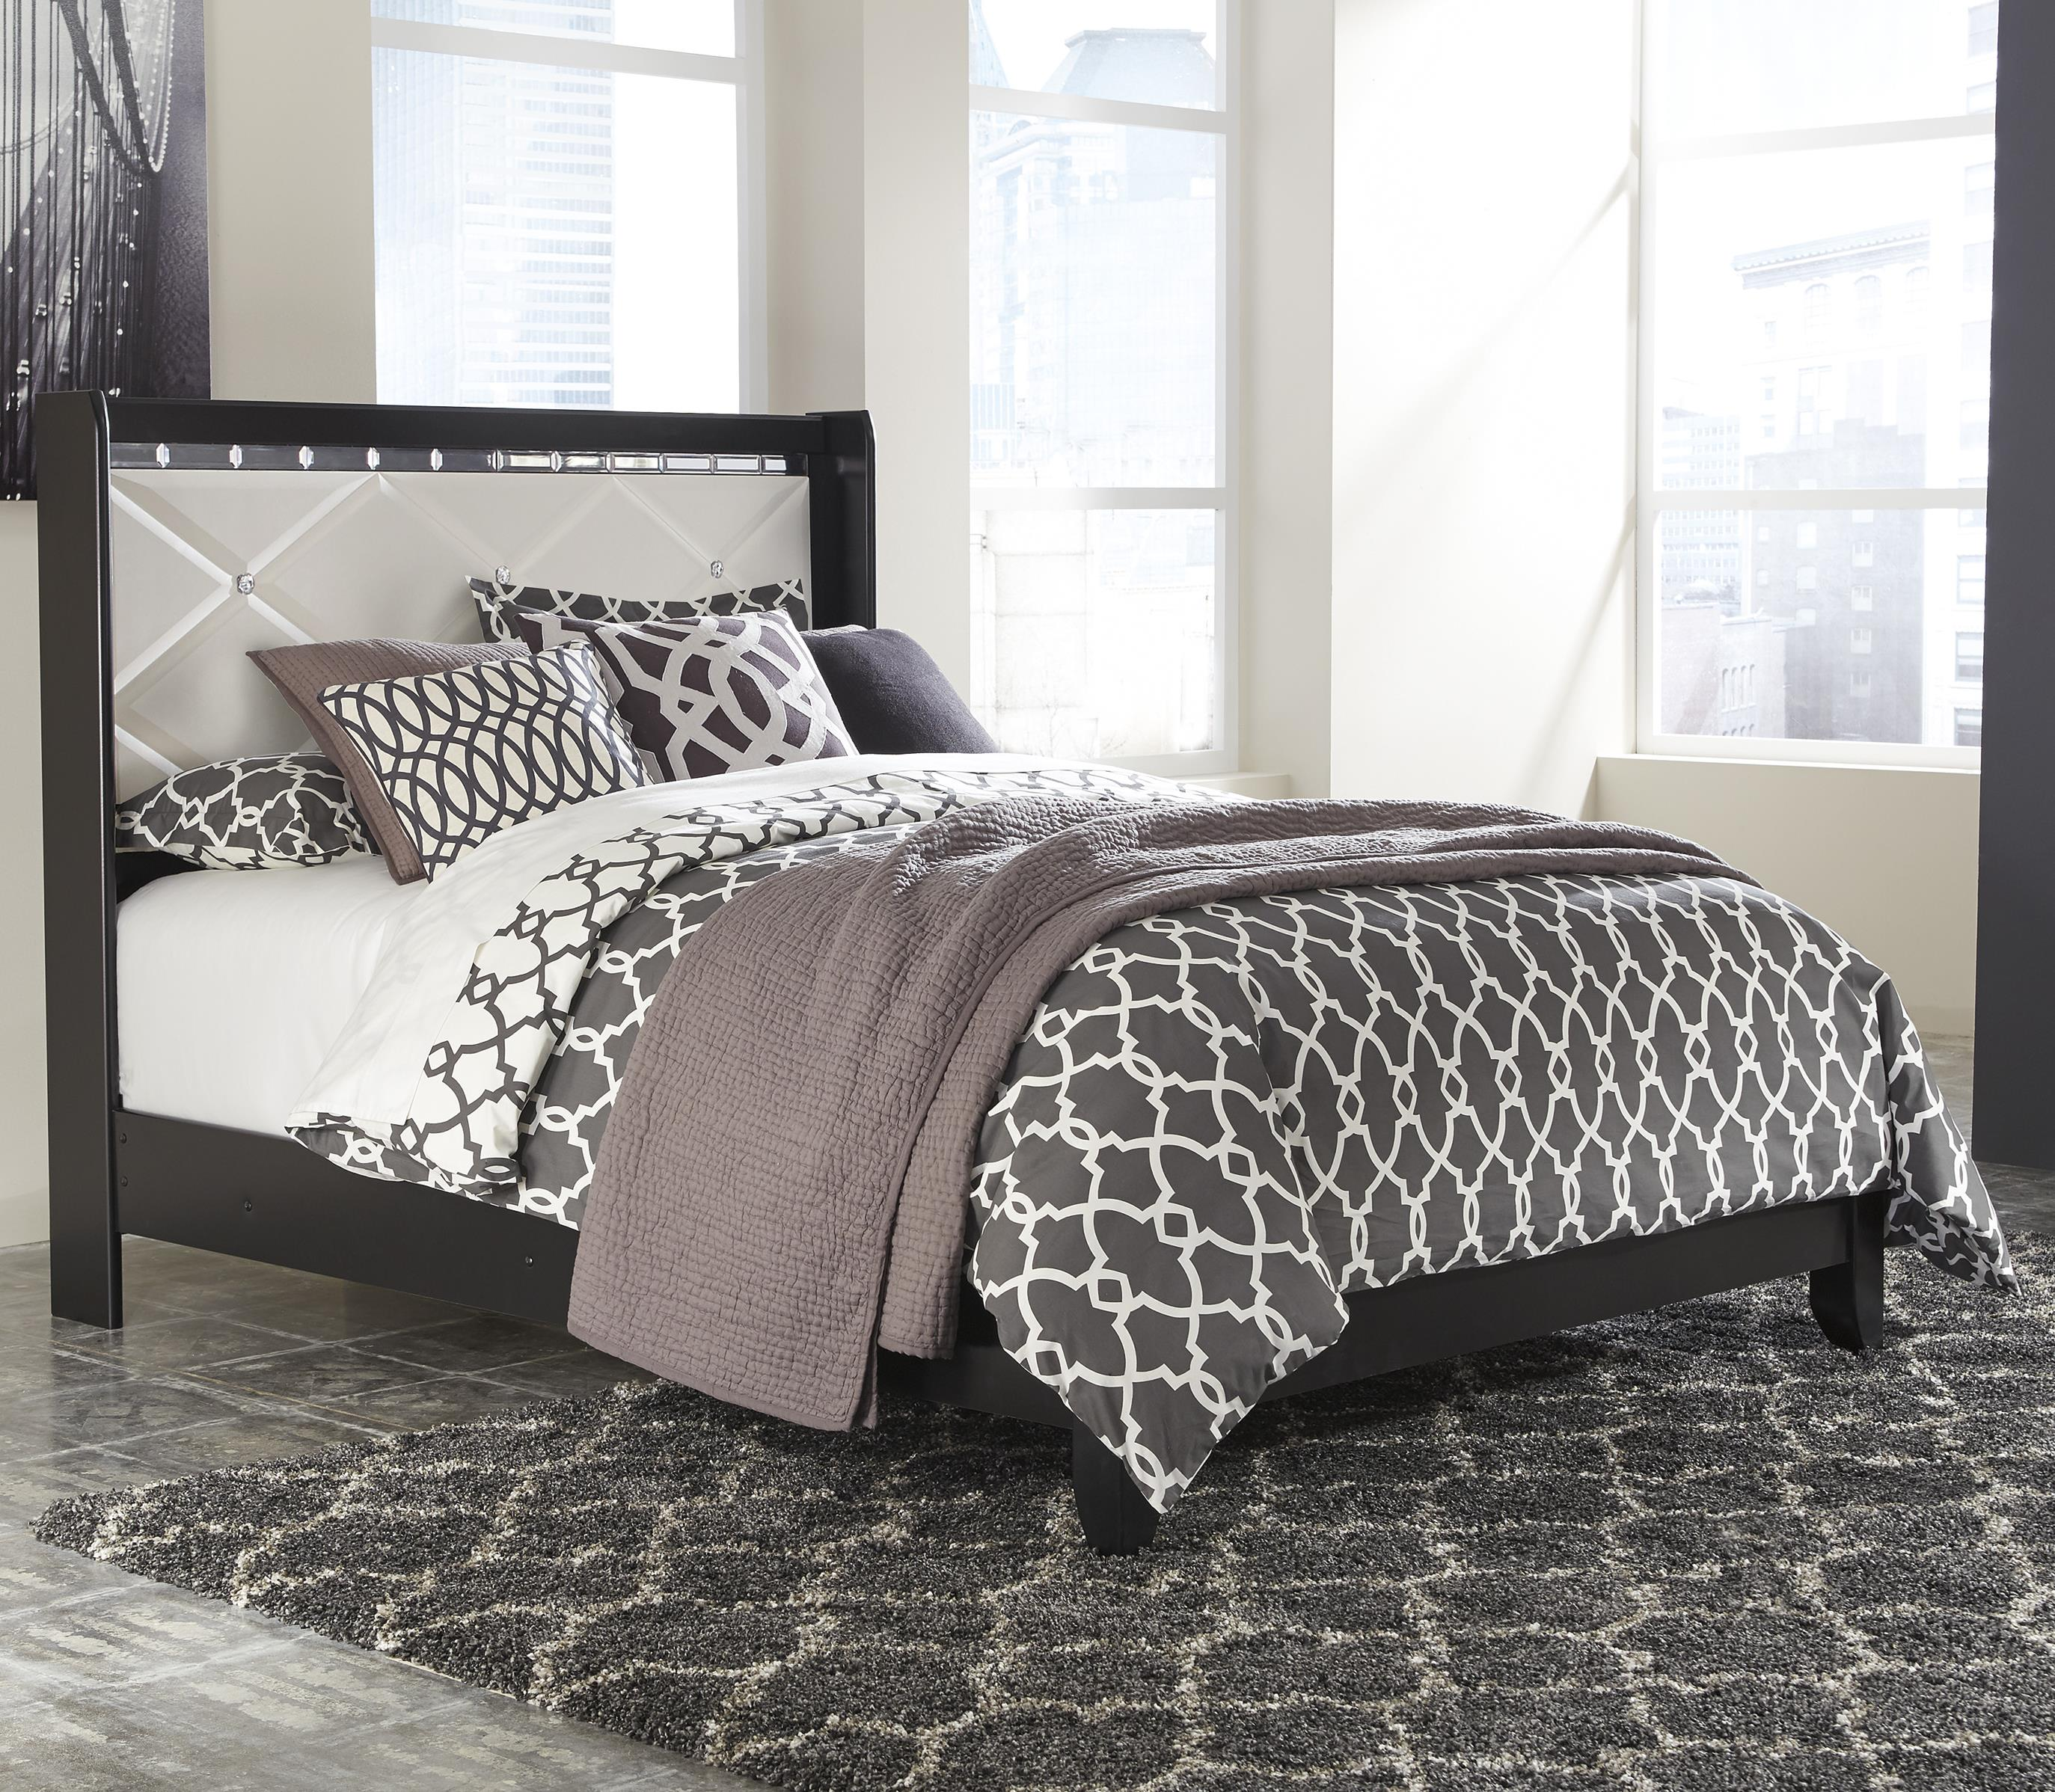 Signature Design by Ashley Fancee Queen Panel Bed - Item Number: B348-57+54